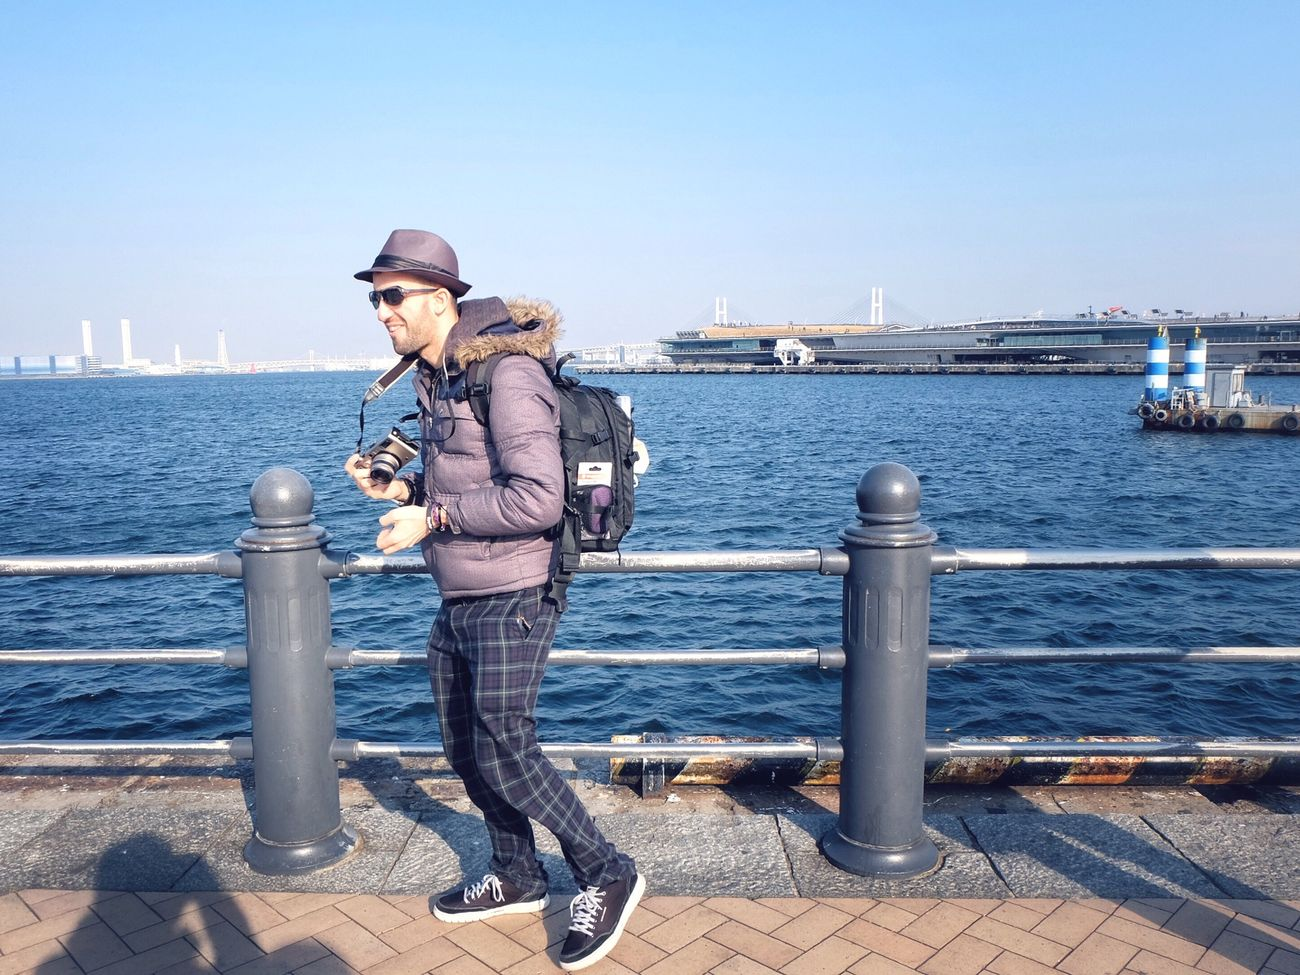 The Human Condition EyeEm Tokyo Meetup 7 Landscape_Collection Landscape Portrait Sea Blue Sky Keigo Port Cityscapes